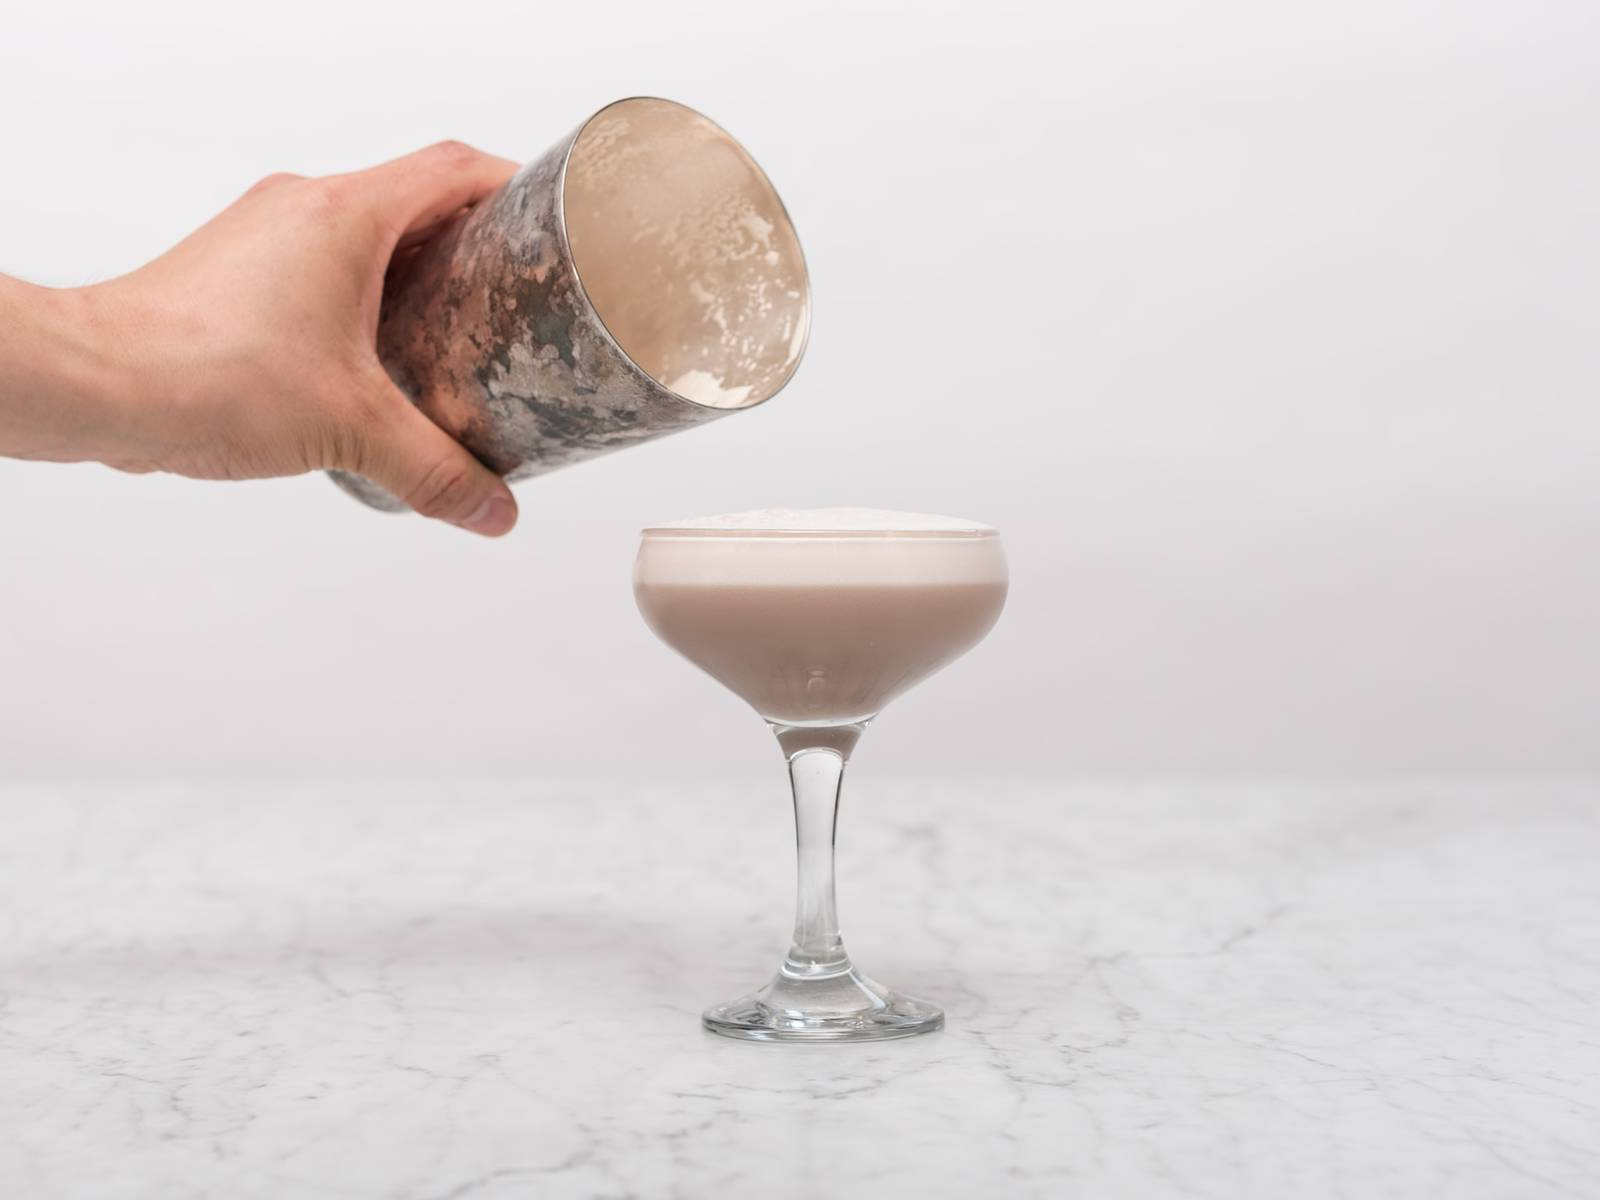 Remove ice from cocktail shaker, and give it another good shake. Pour into a glass.